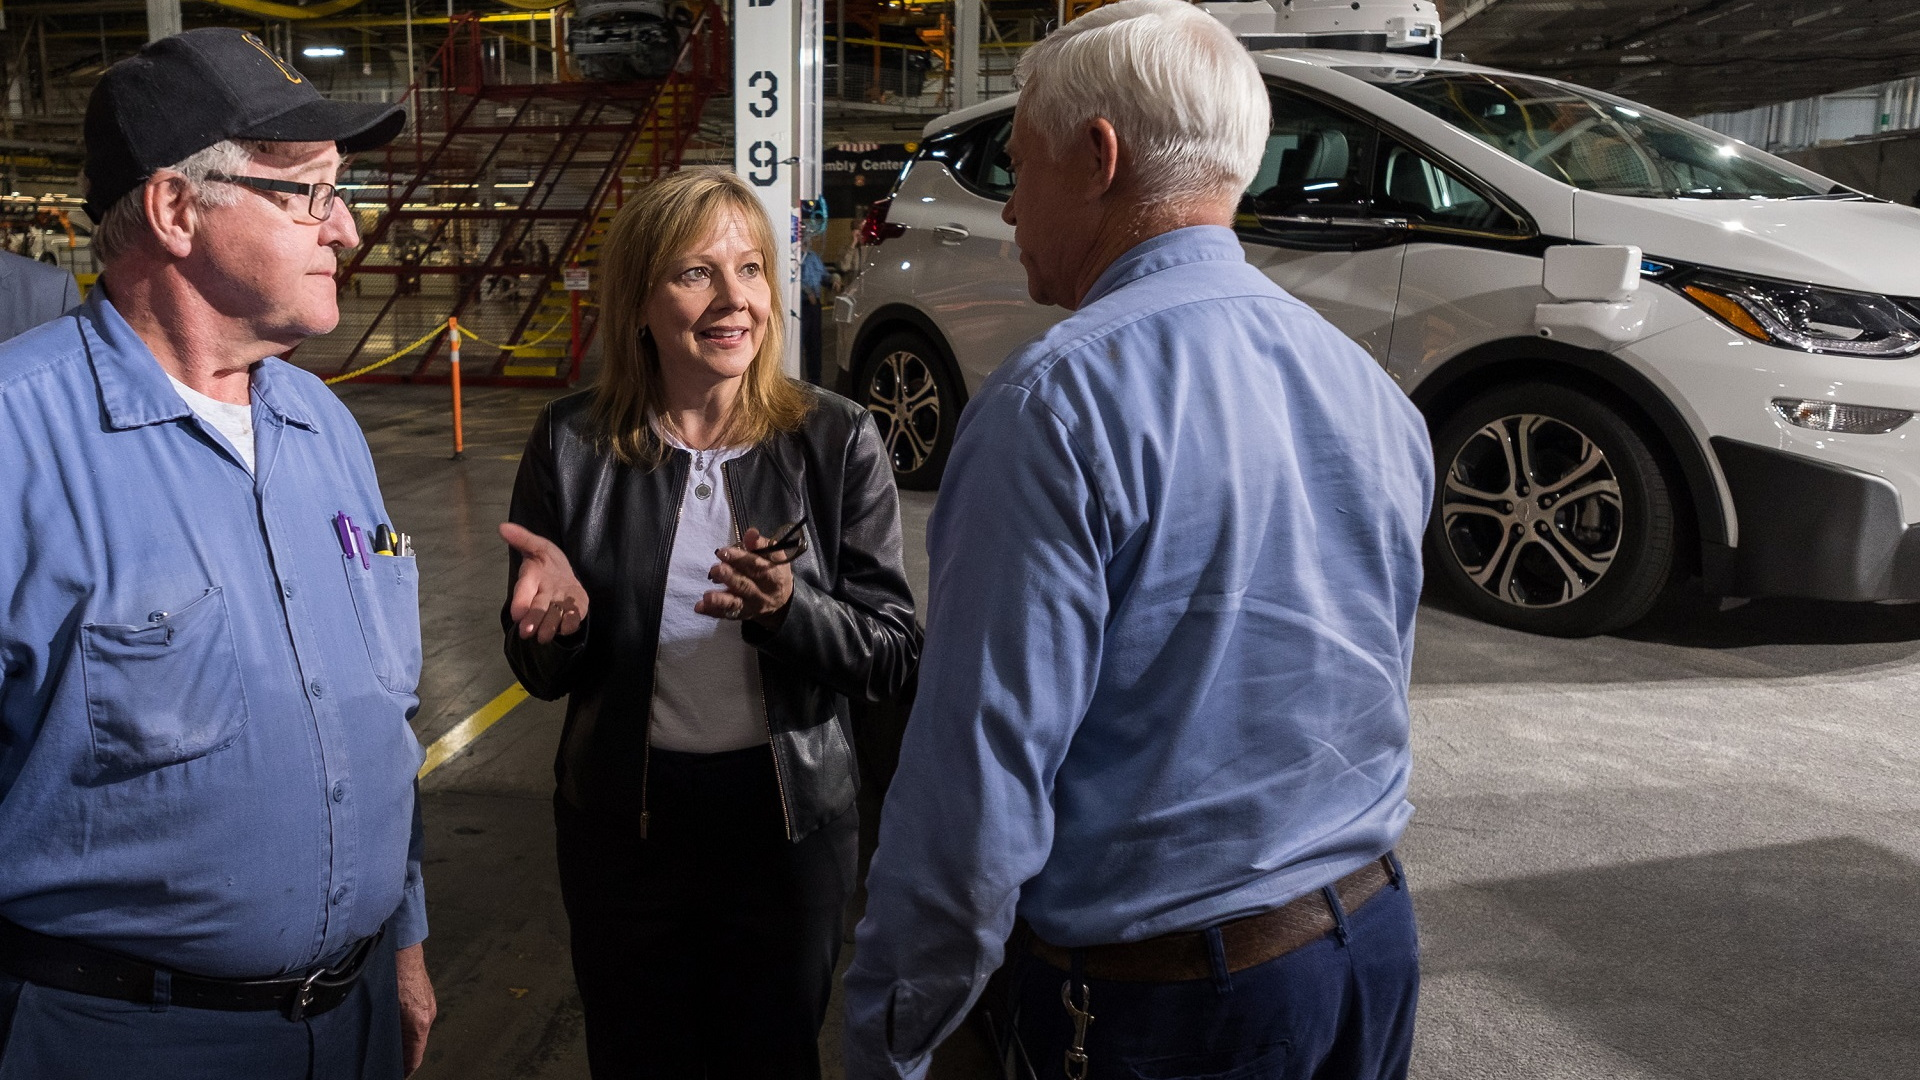 One of 130 second-generation self-driving Chevrolet Bolt EV electric cars, with GM CEO Mary Barra